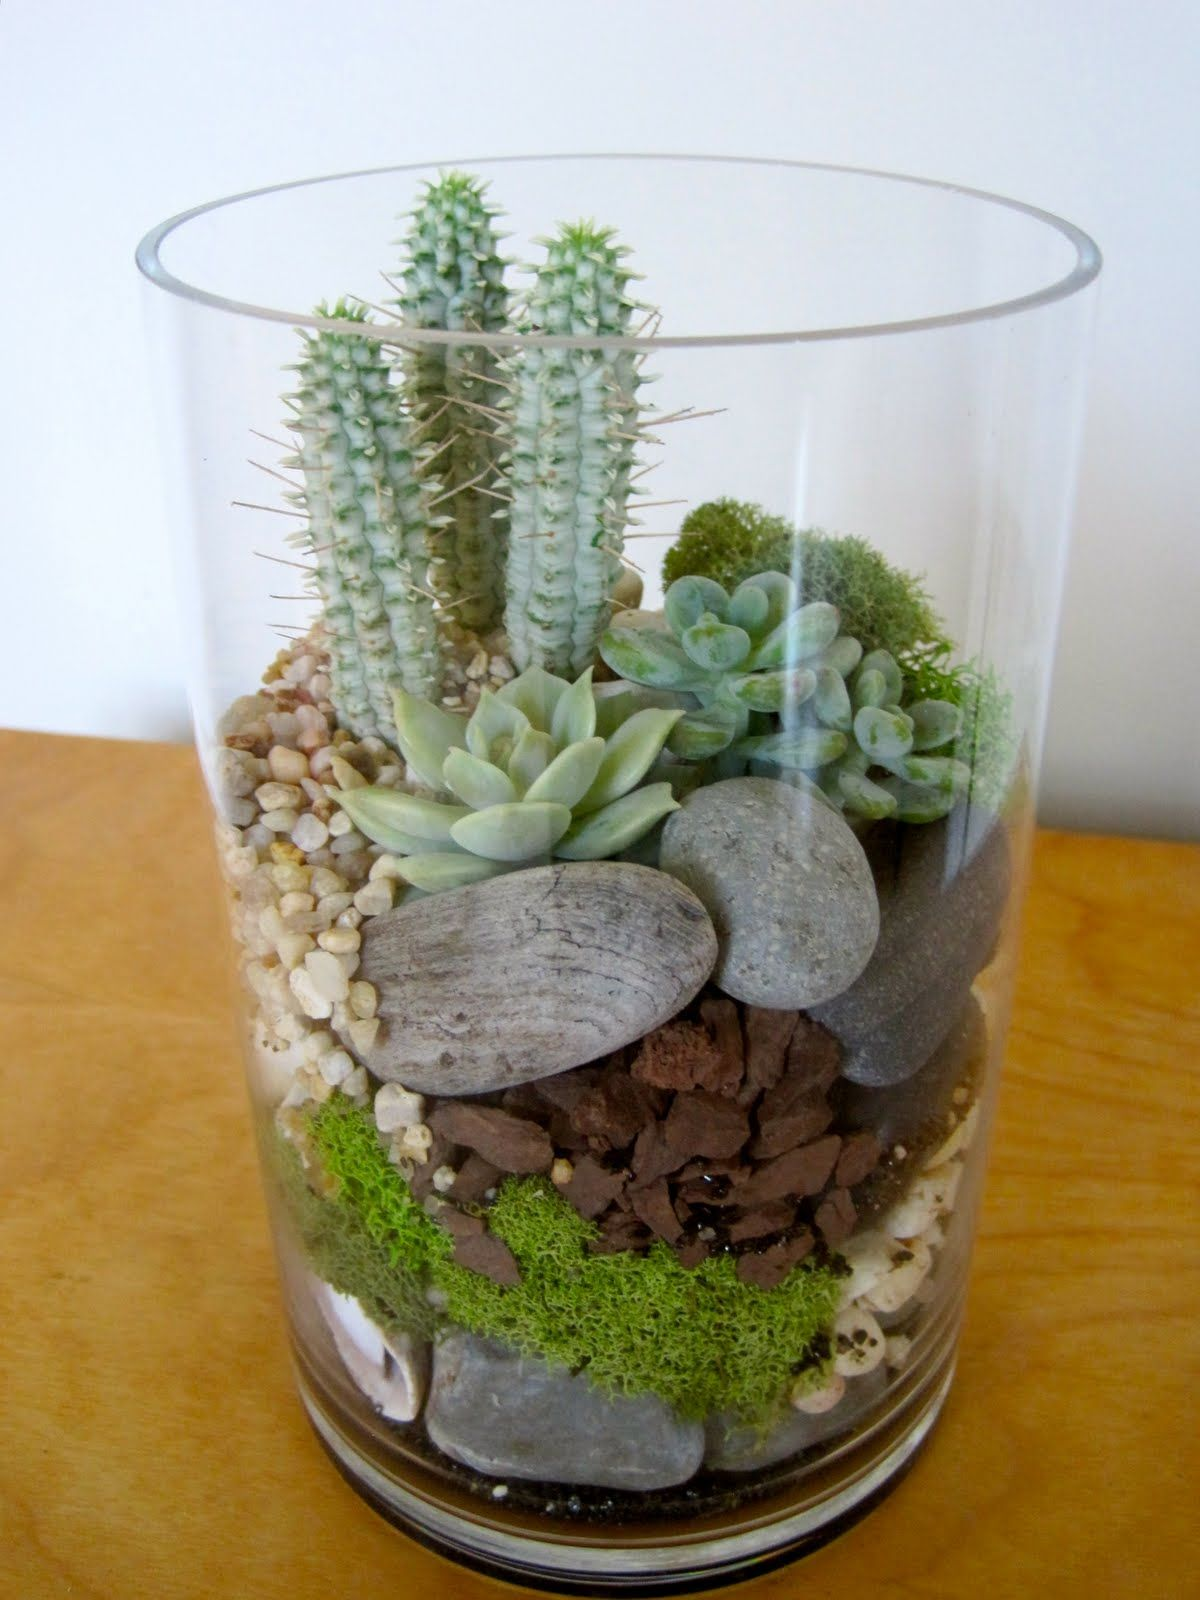 Succulent And Cactus Terrarium With River Stones And Moss Inside